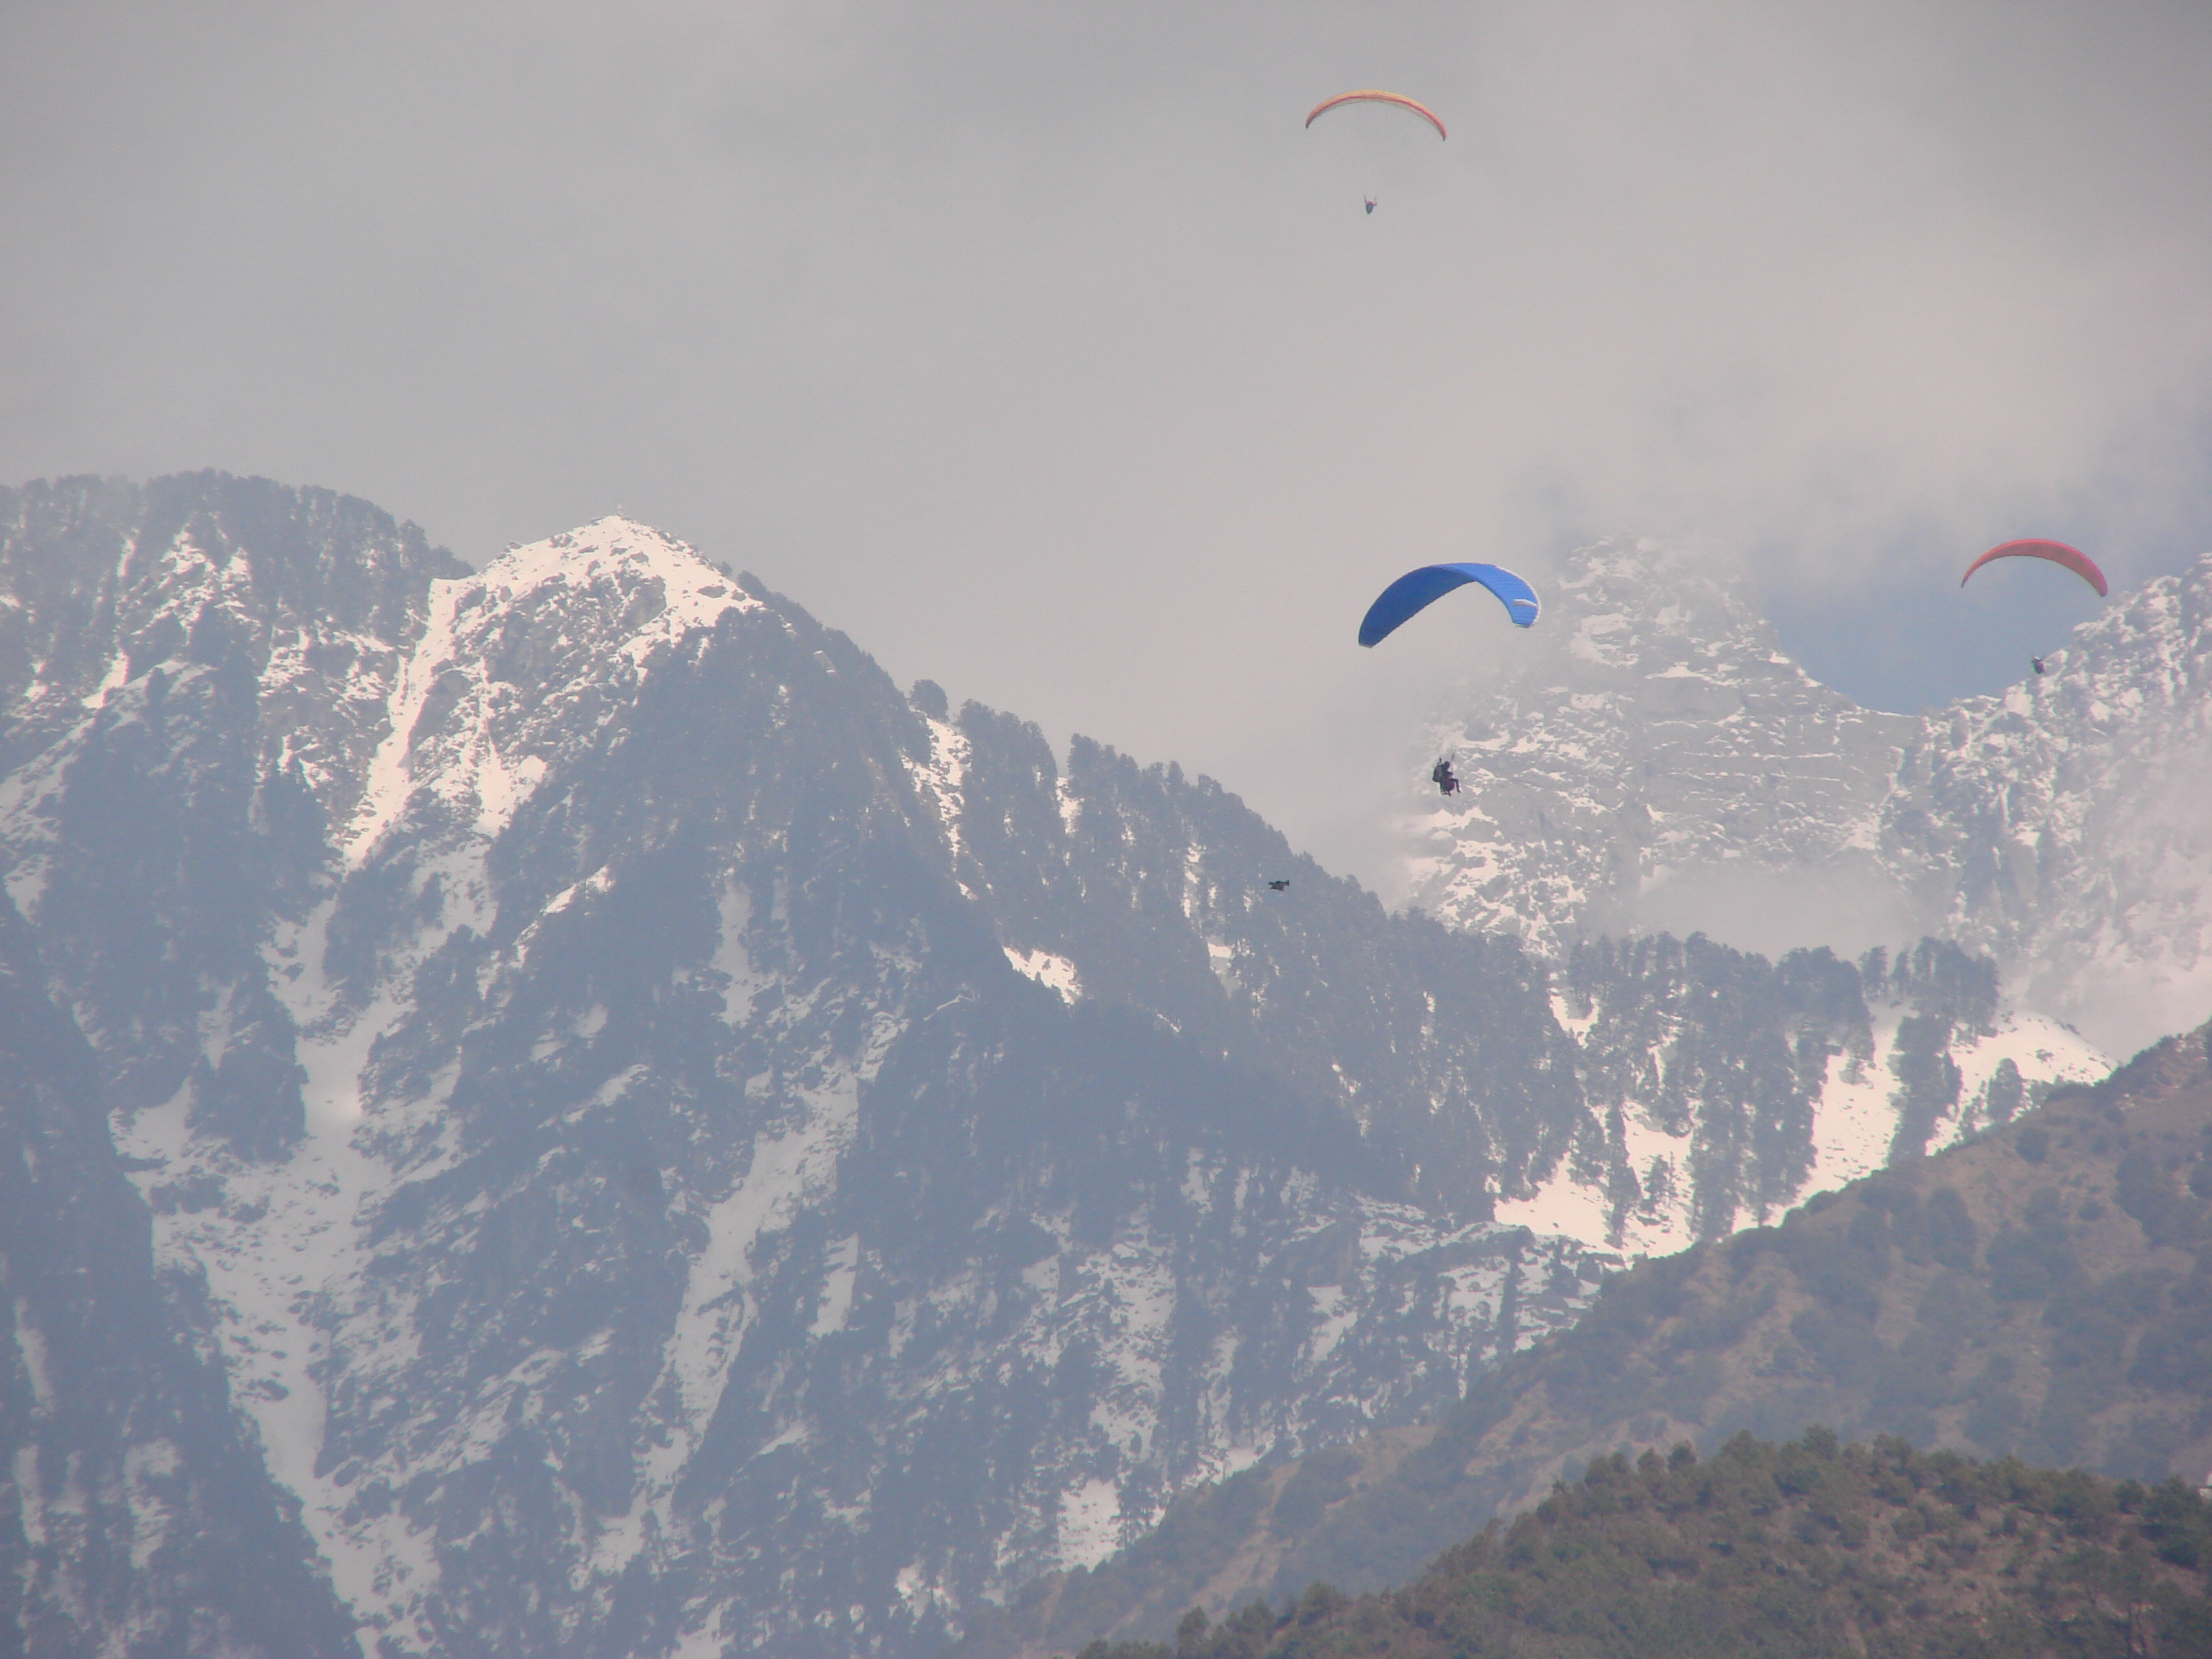 Solo Paragliding course (P1and P2) at Bir billing